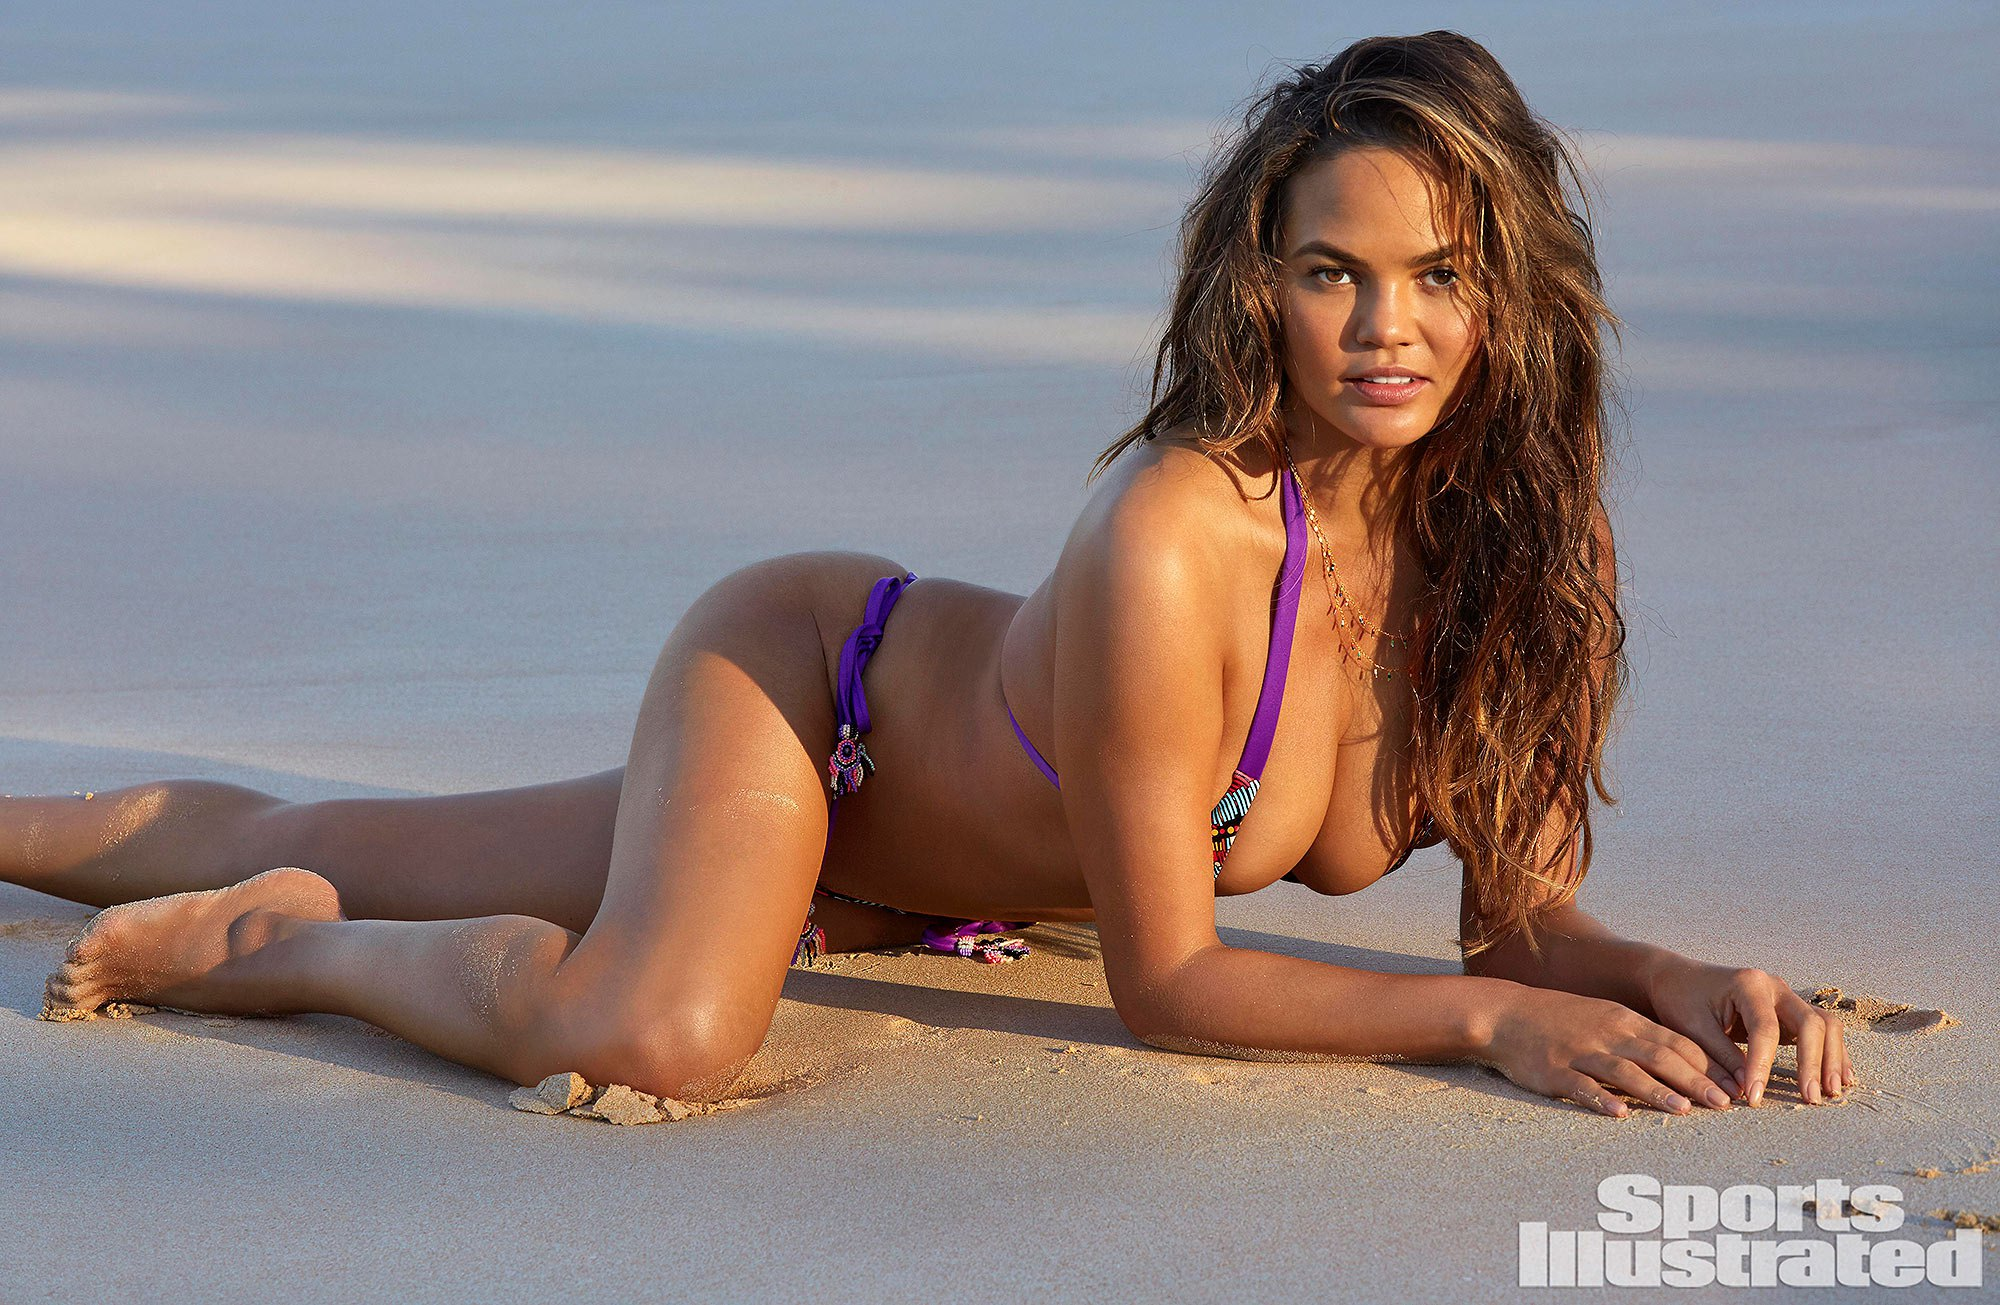 Chrissy Teigen's First Post-Baby Bikini Shoot for the Sports Illustrated Swimsuit Issue Is About 'Embracing the Changes'